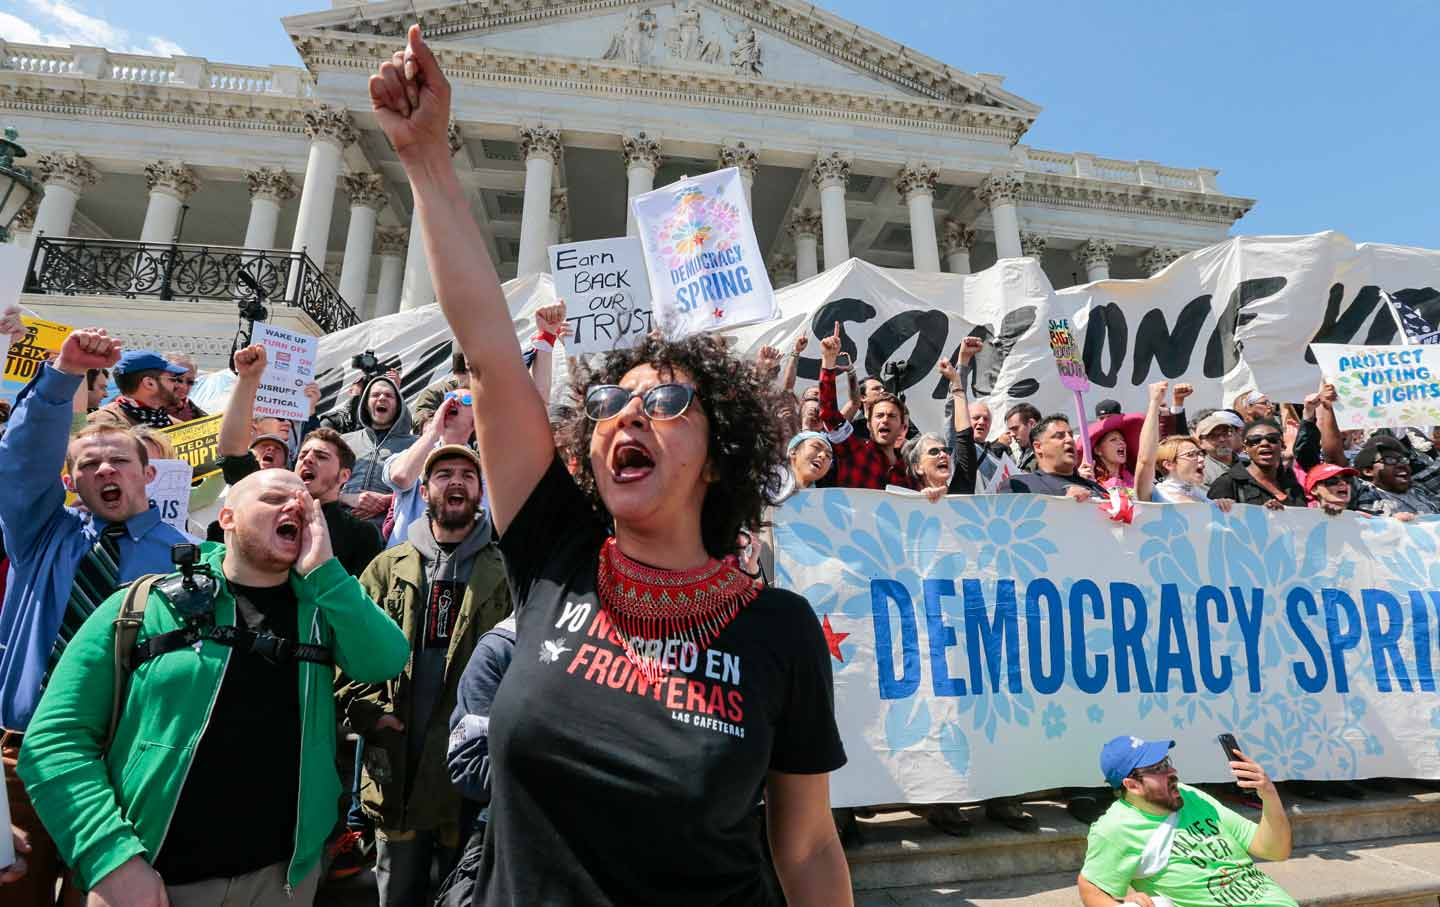 'Democracy Spring' protesters hold mass sit-in at US Capitol